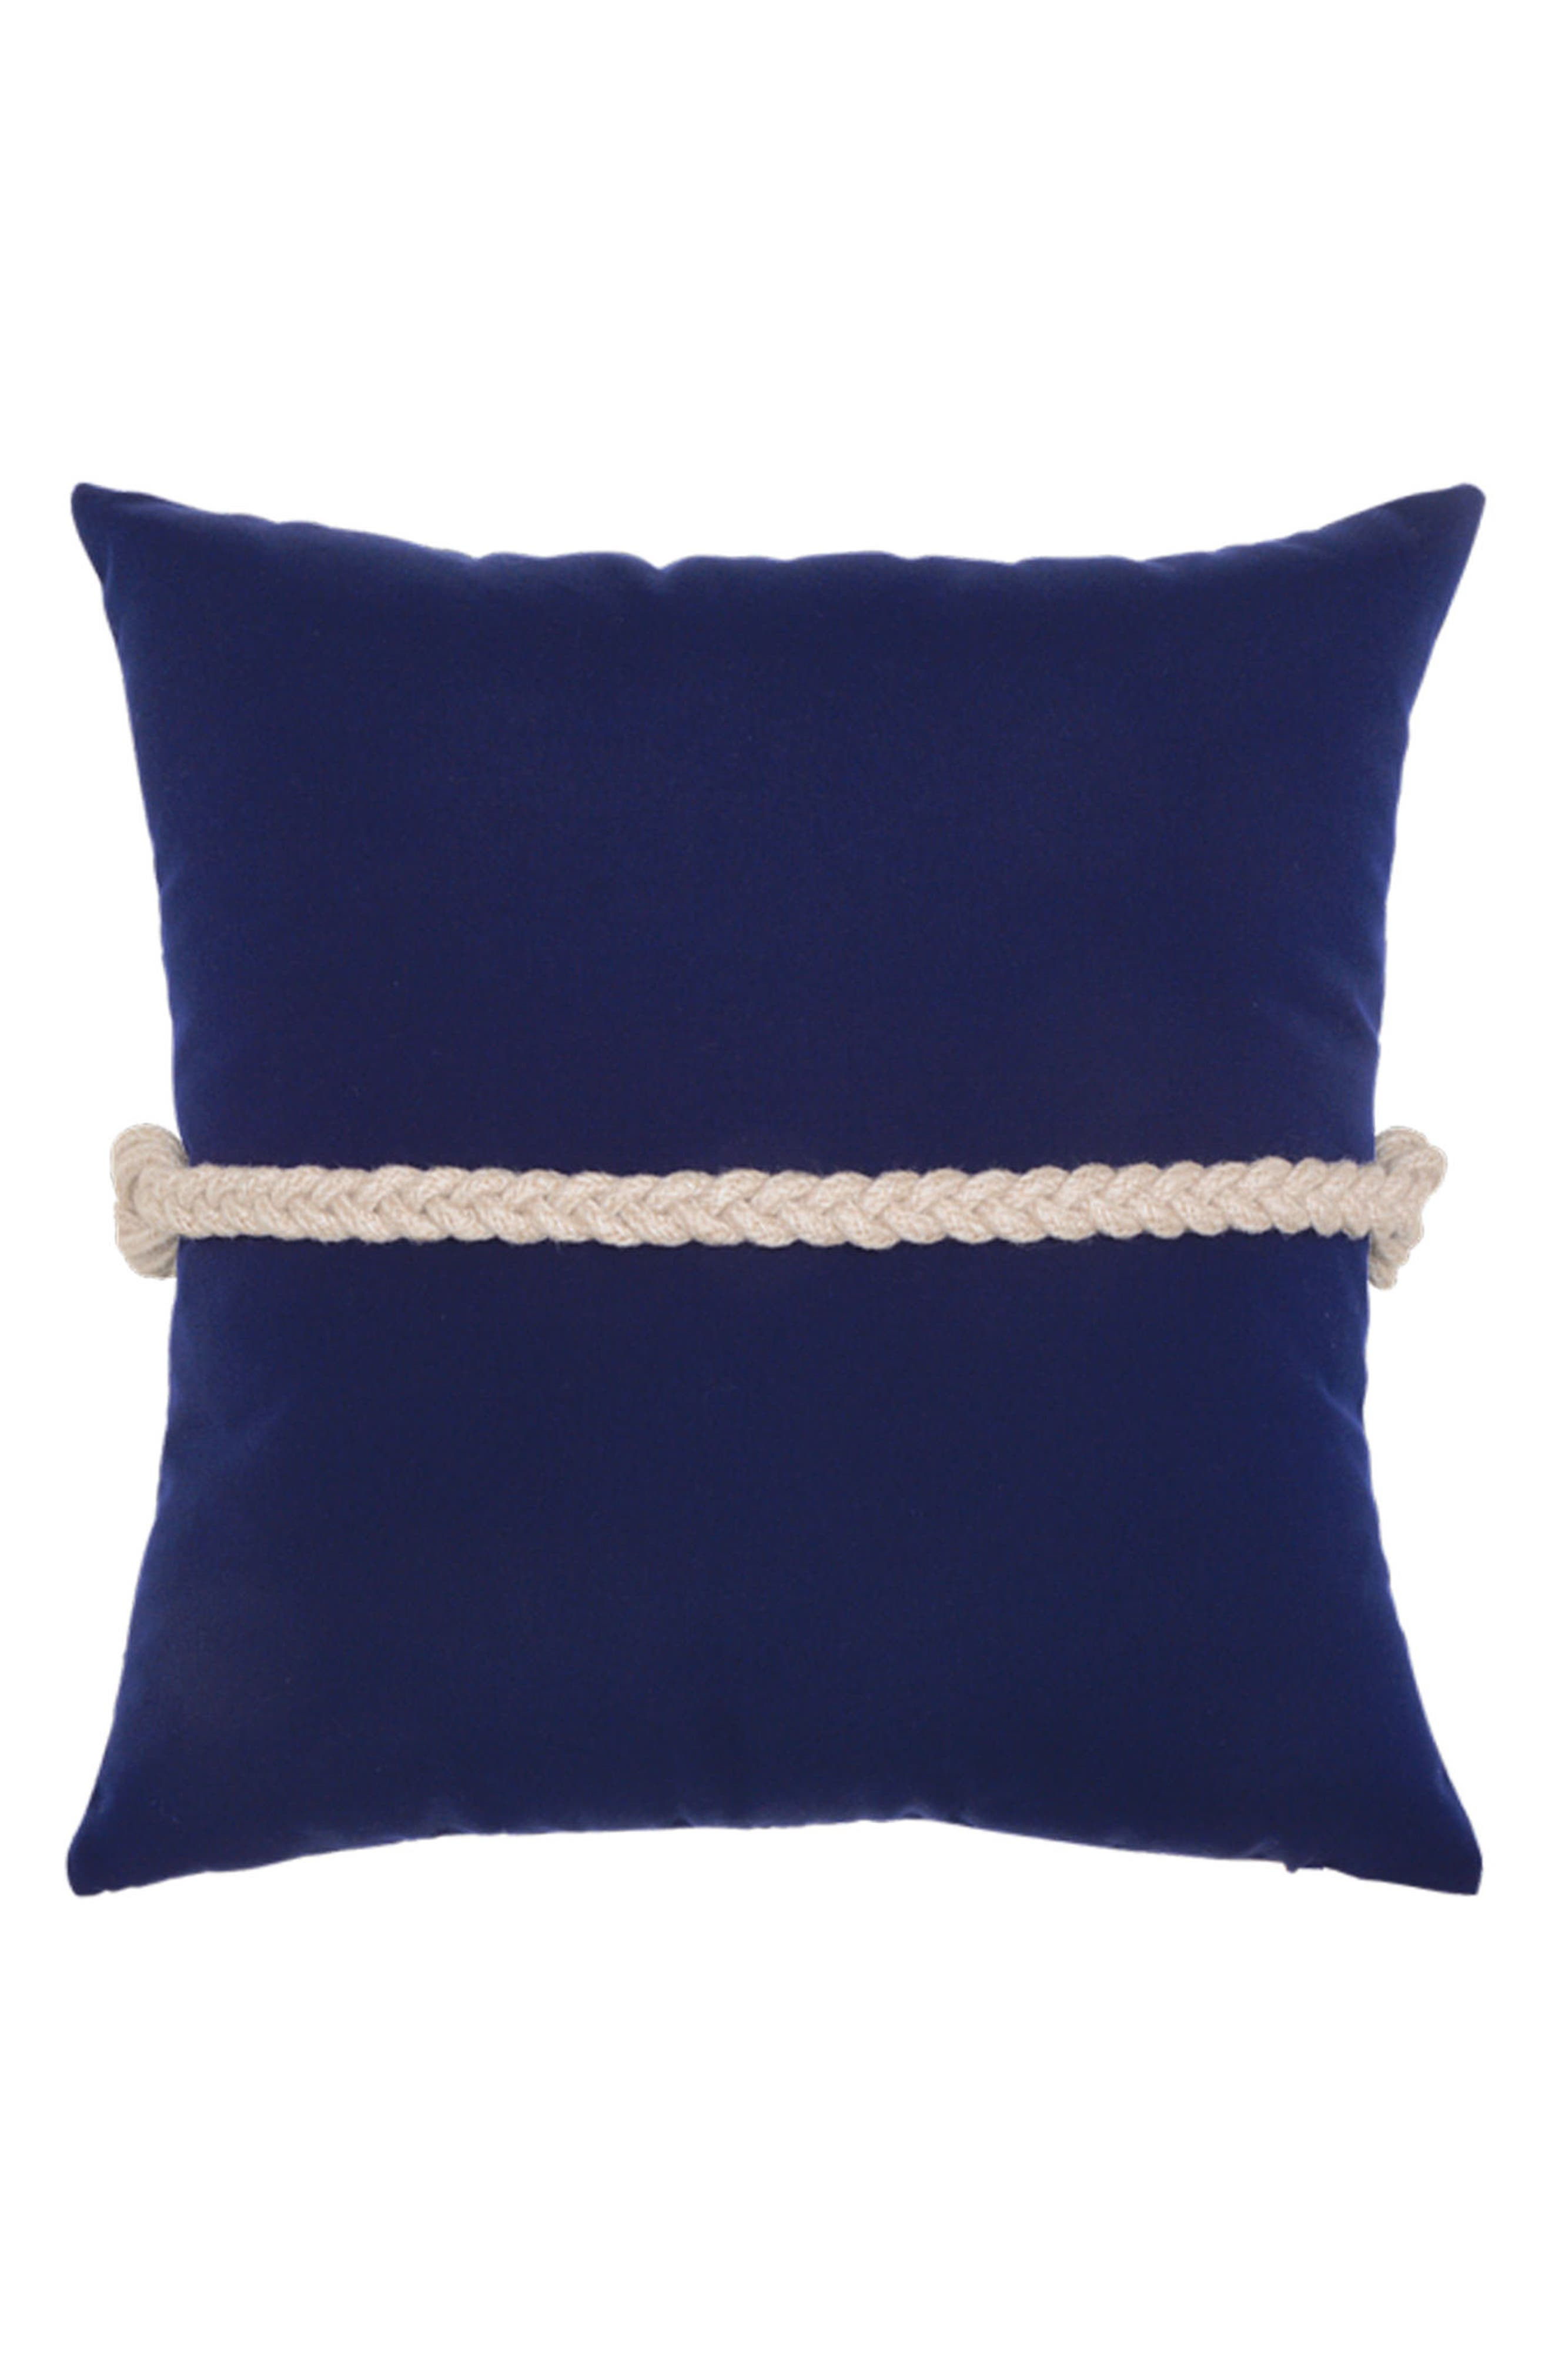 Navy Frogs Clasp Indoor/Outdoor Accent Pillow,                             Alternate thumbnail 2, color,                             BLUE